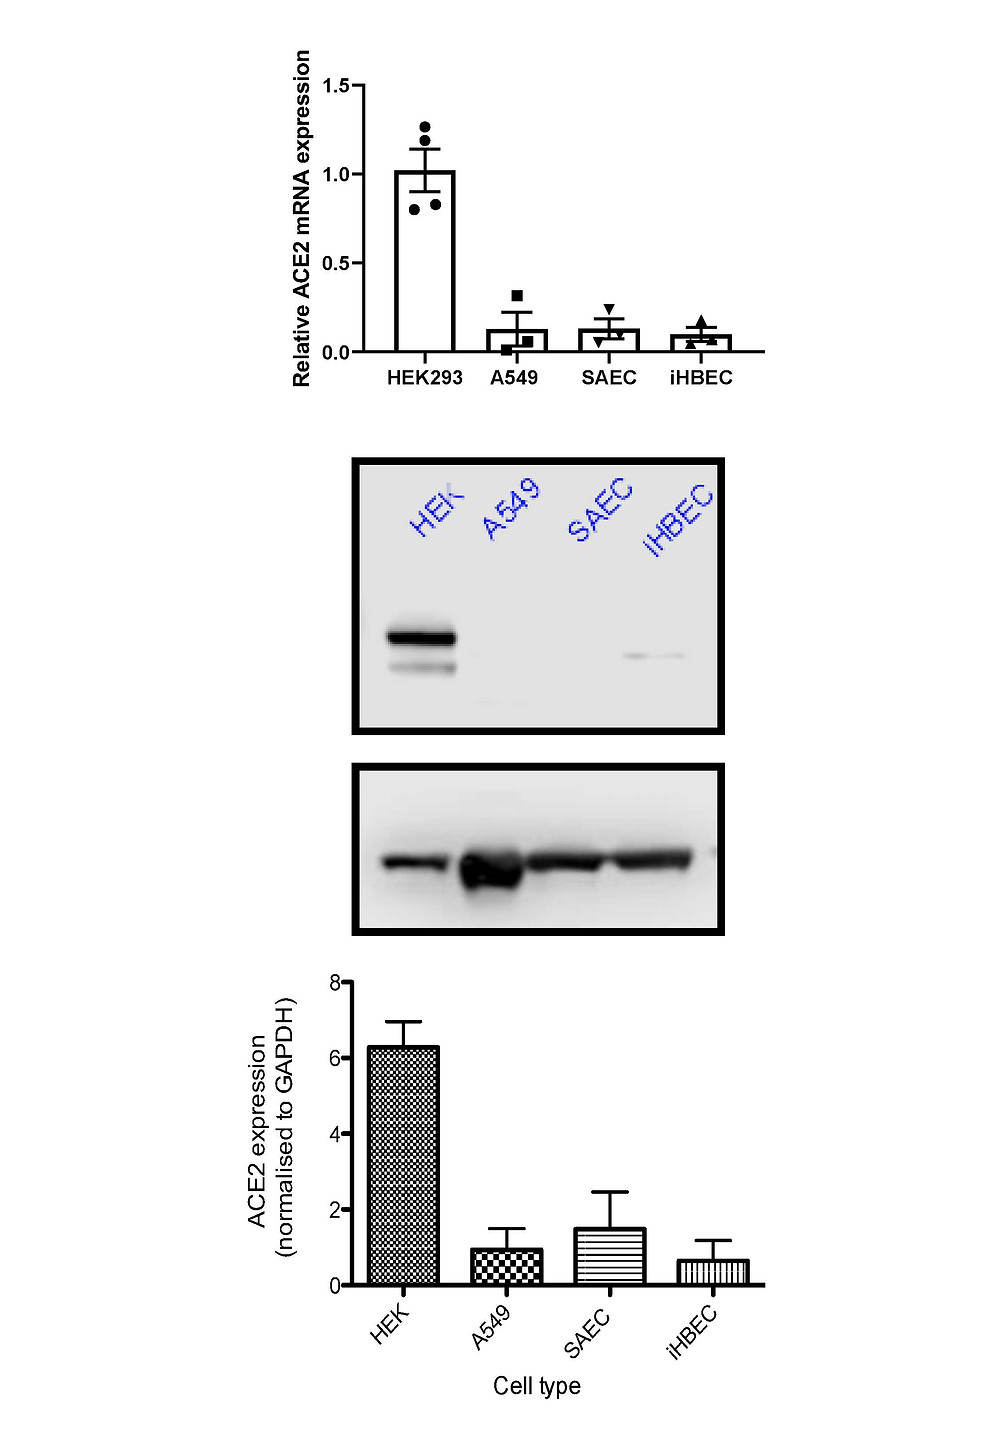 ACE2 Expression at Baseline in Epithelial Cells